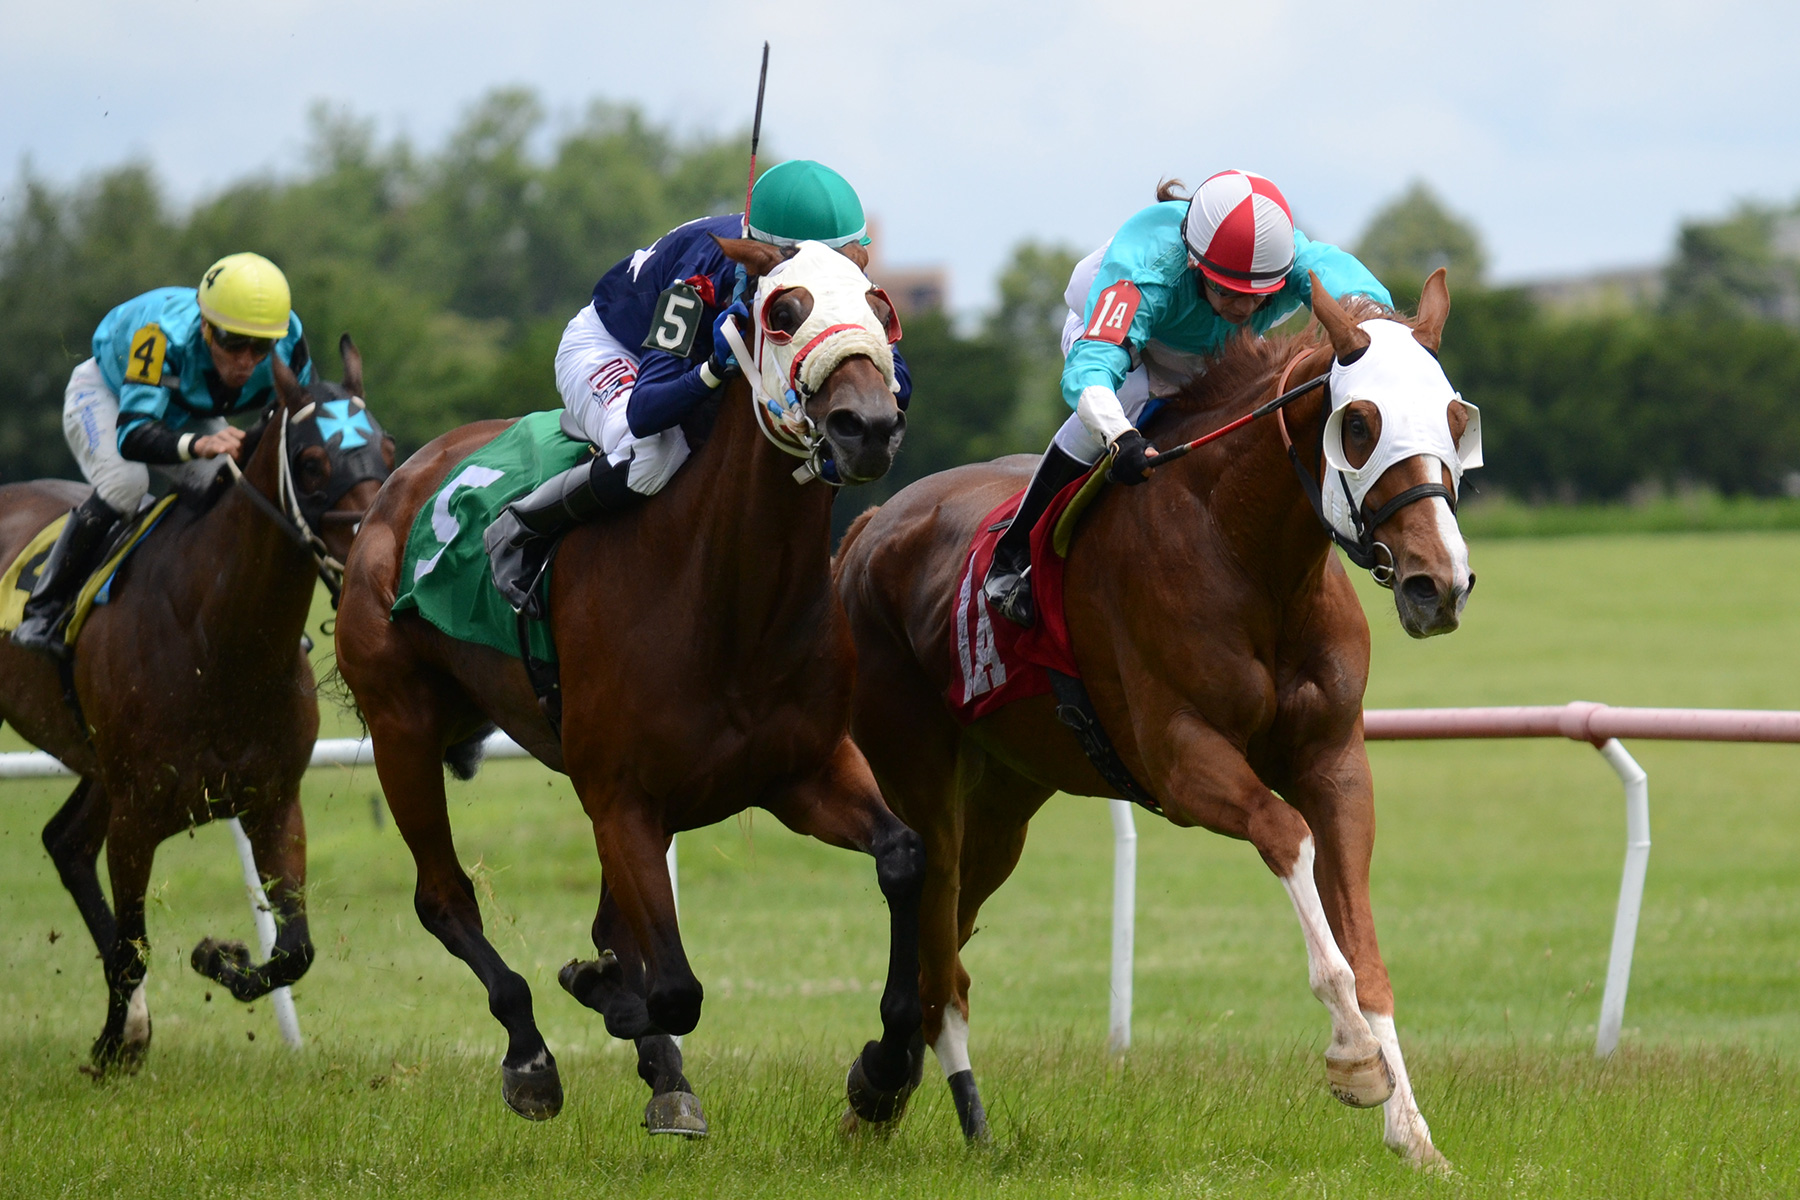 Saint Alfred and Desert Dotty go head to head in the stretch of the Thomas F. Moran Stakes for Massachusetts-breds on July 30